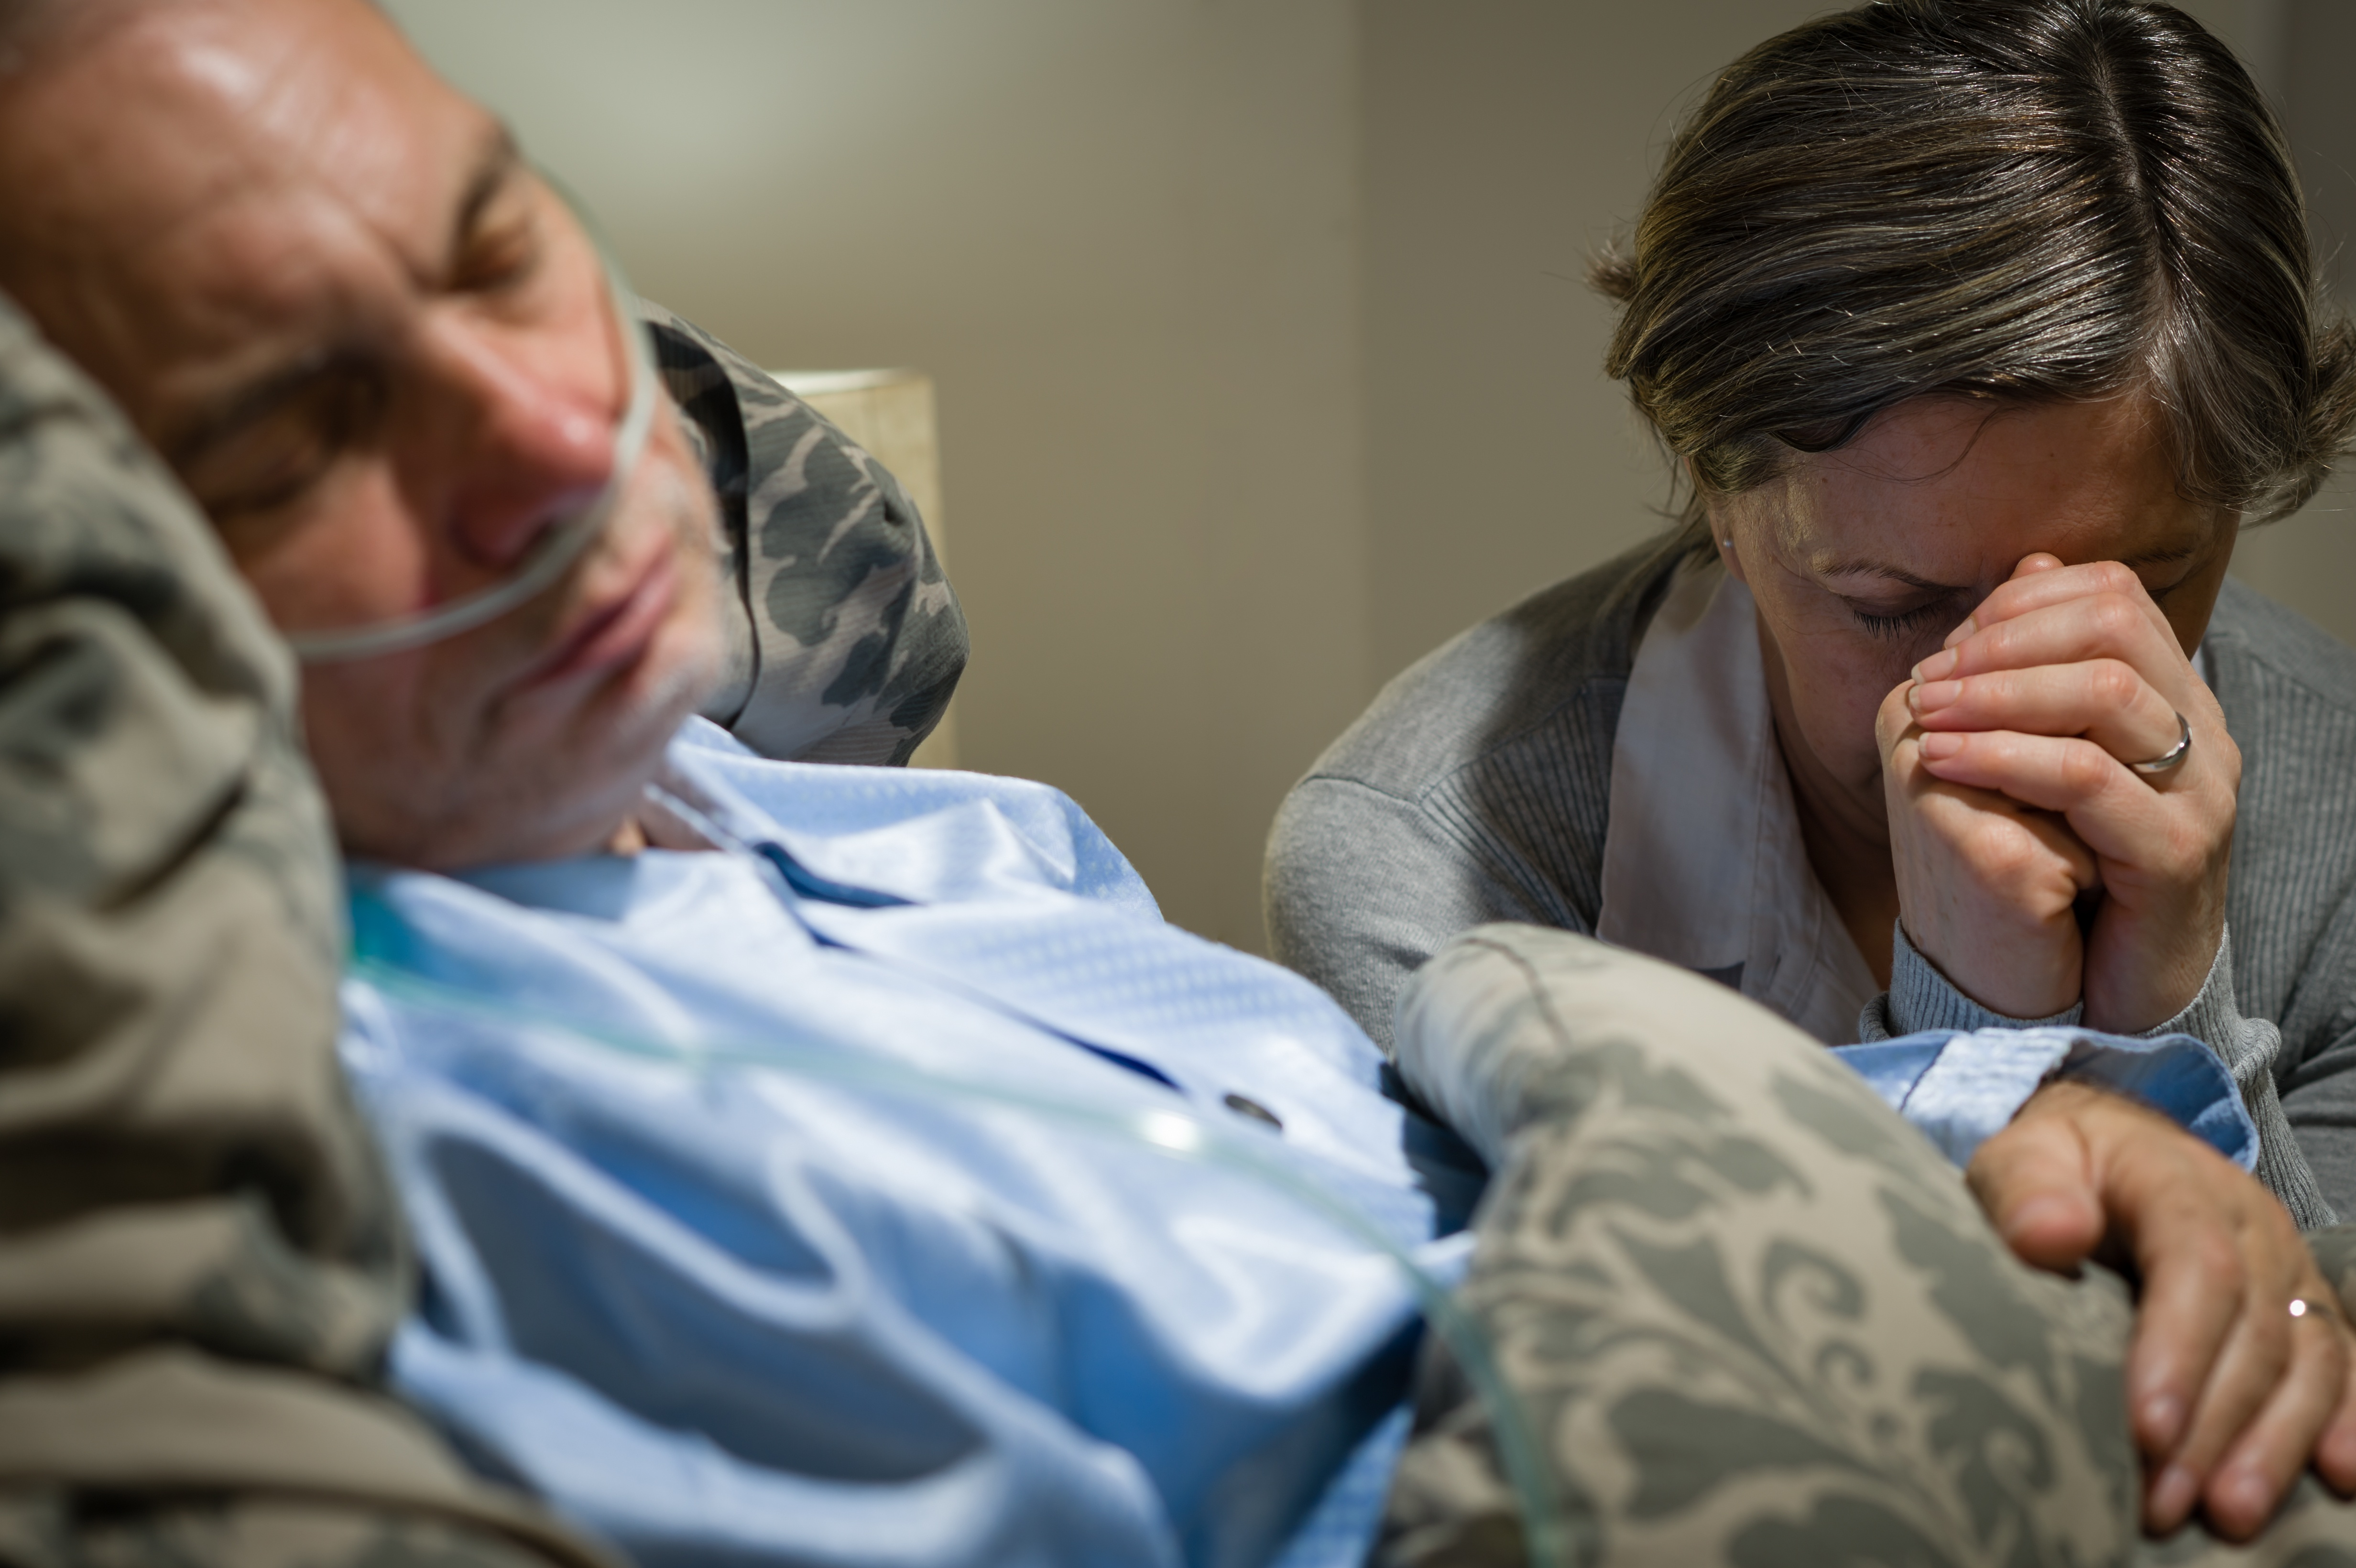 old-wife-praying-for-terminally-ill-husband-lying-in-coma_StBrP7p4i.jpg